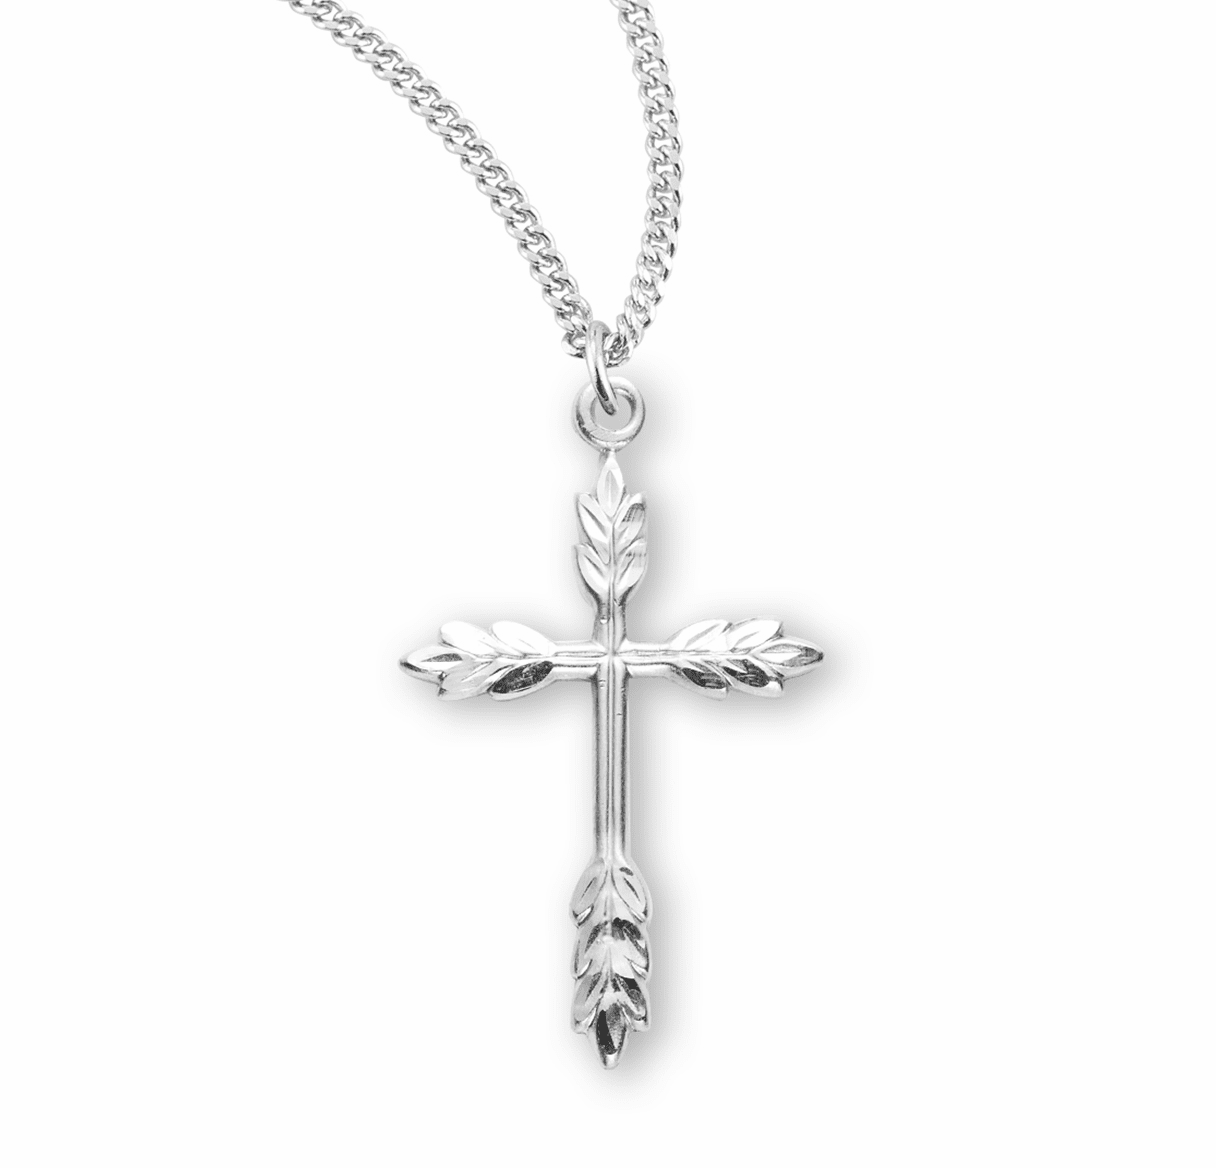 HMH Religious Medium Wheat Sterling Silver Cross Necklace